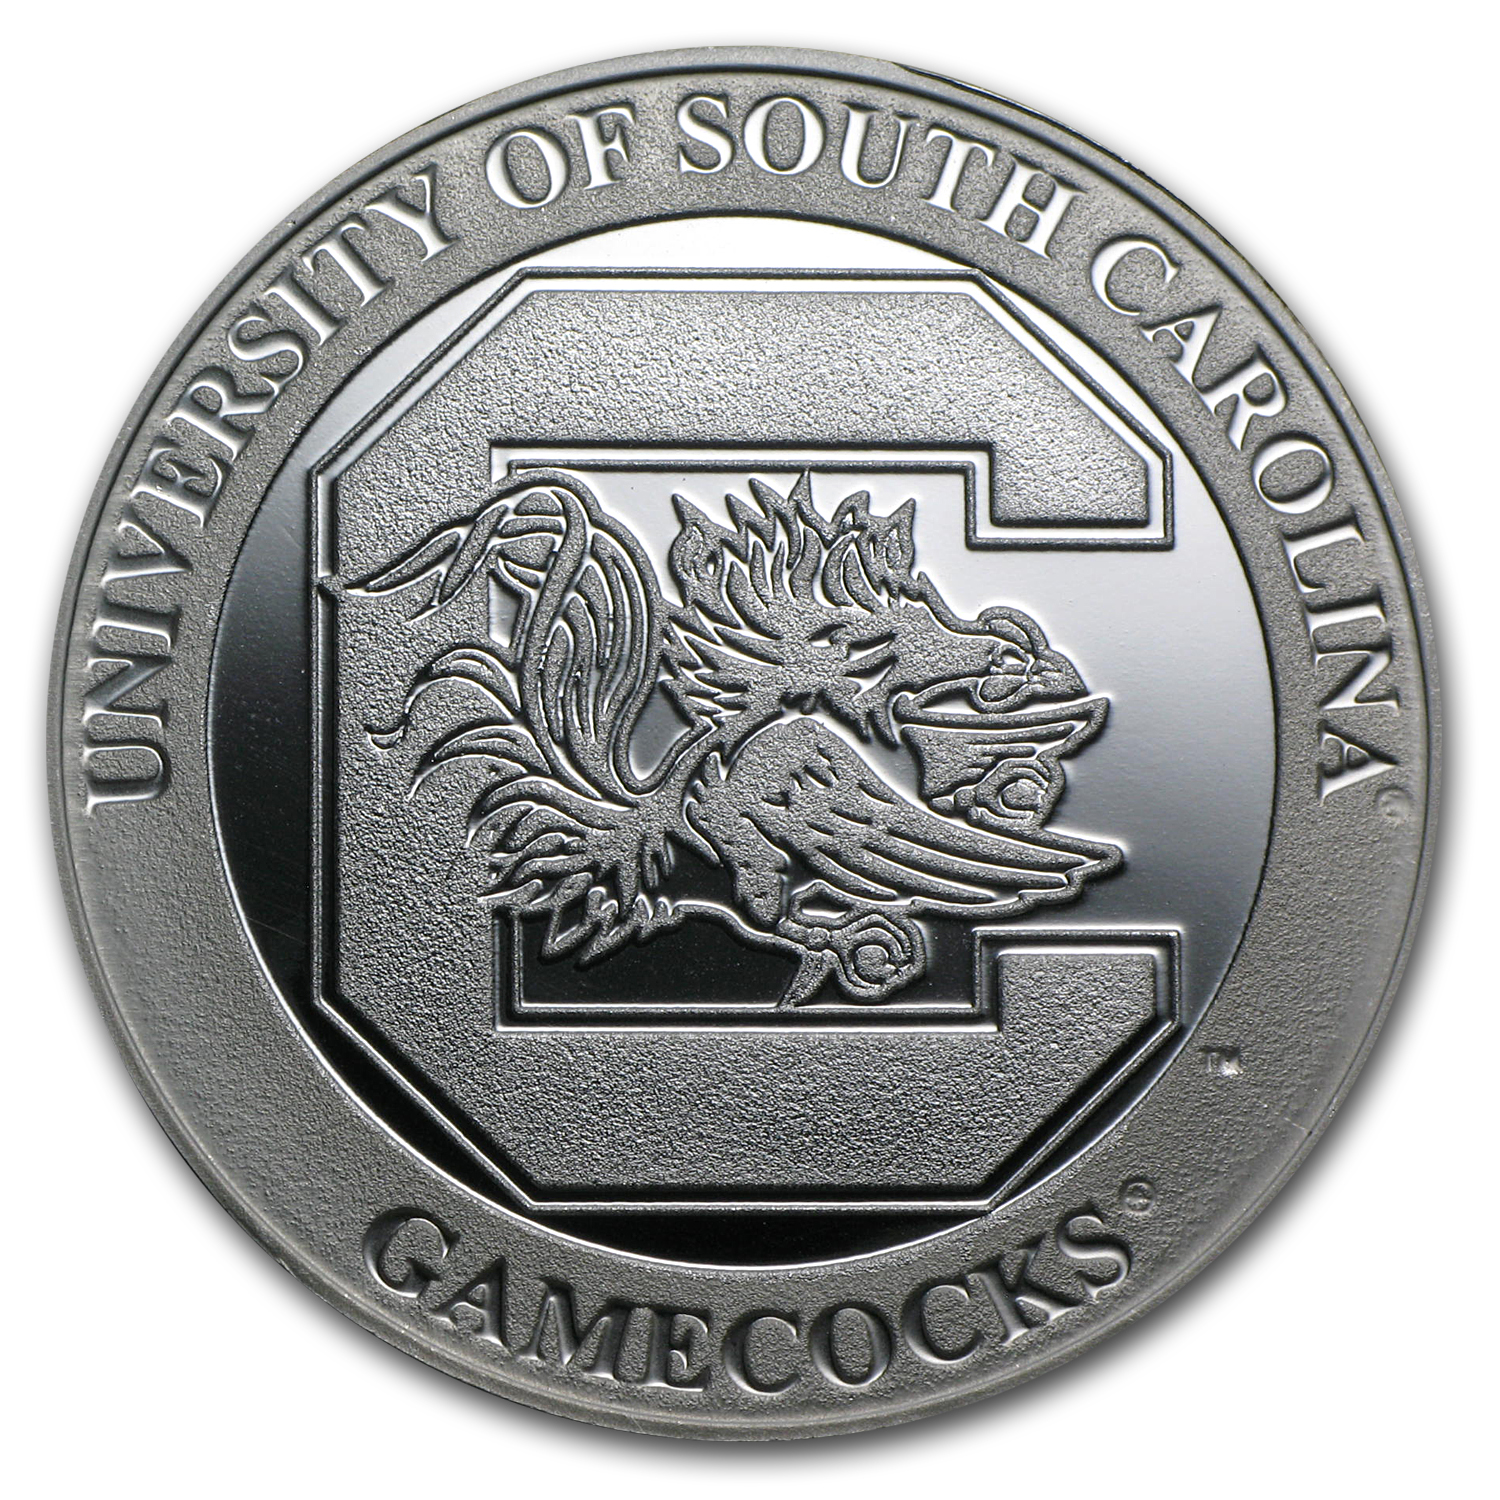 1 oz Silver Round - University of South Carolina